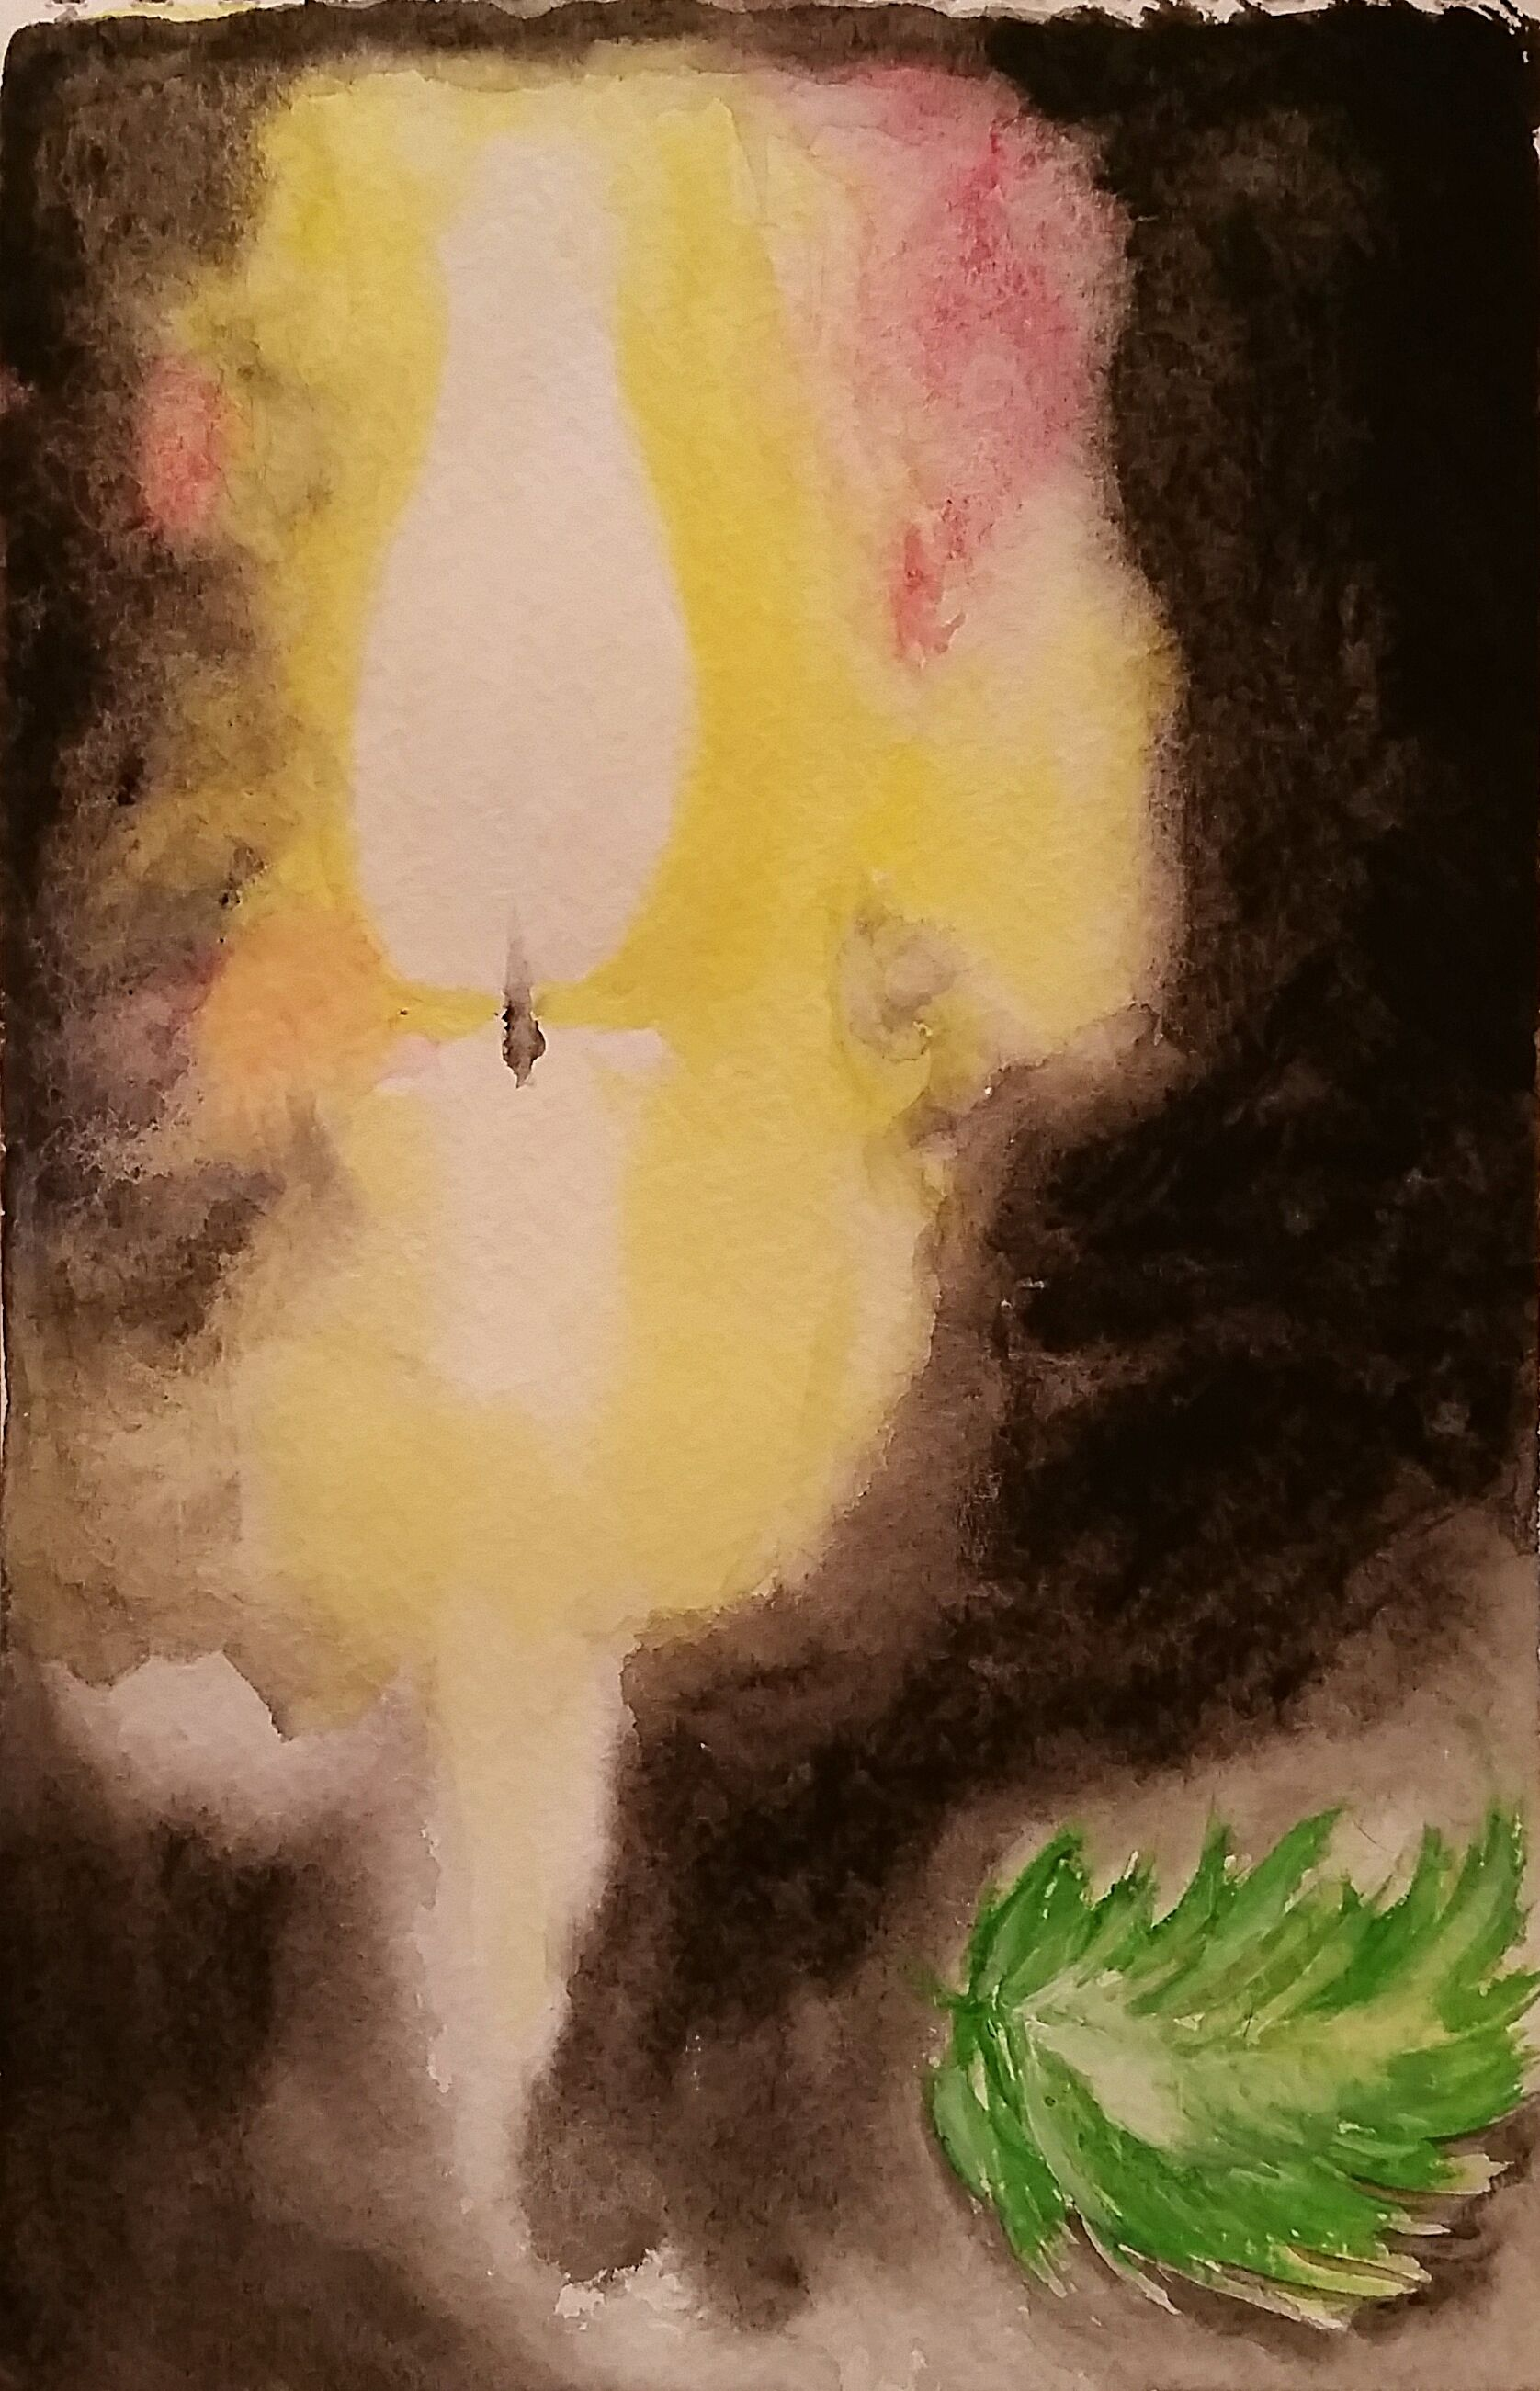 Candle and Green Feather, small watercolor artwork, original watercolor painting, www.radali.co